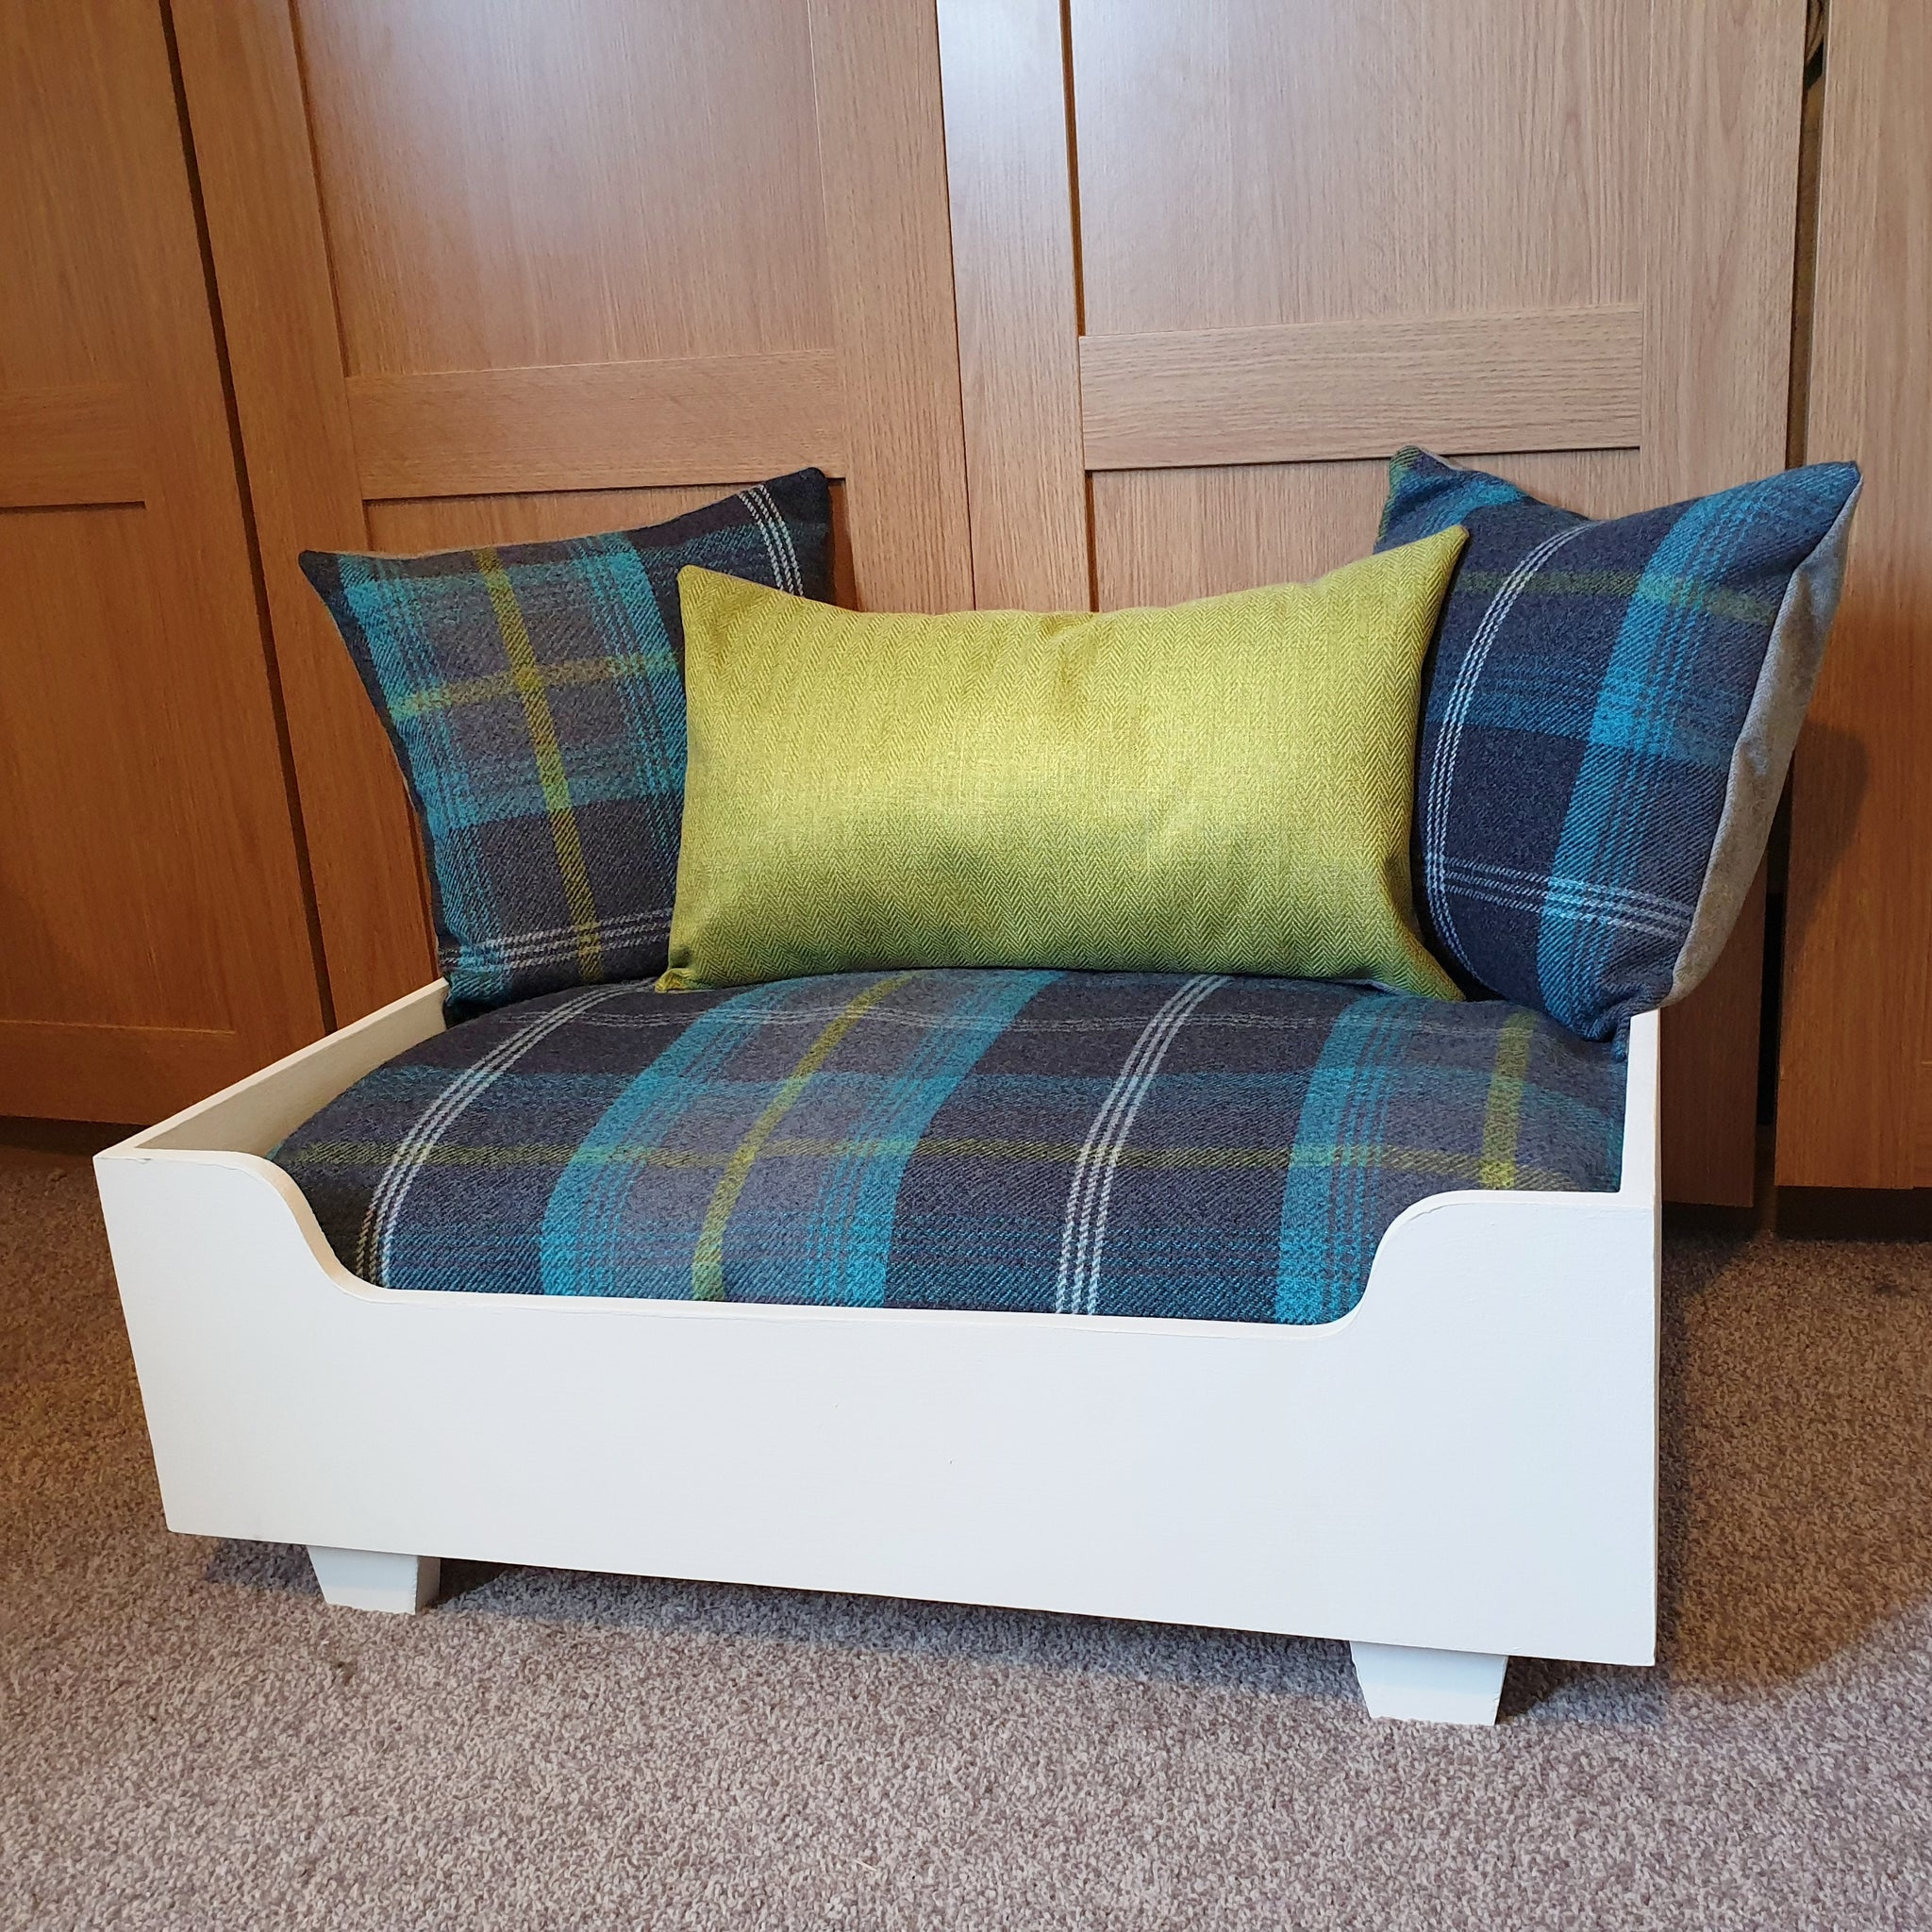 Handmade Dog Bed - Cream frame with blue tartan mattress and pillows + green herringbone centre pillow